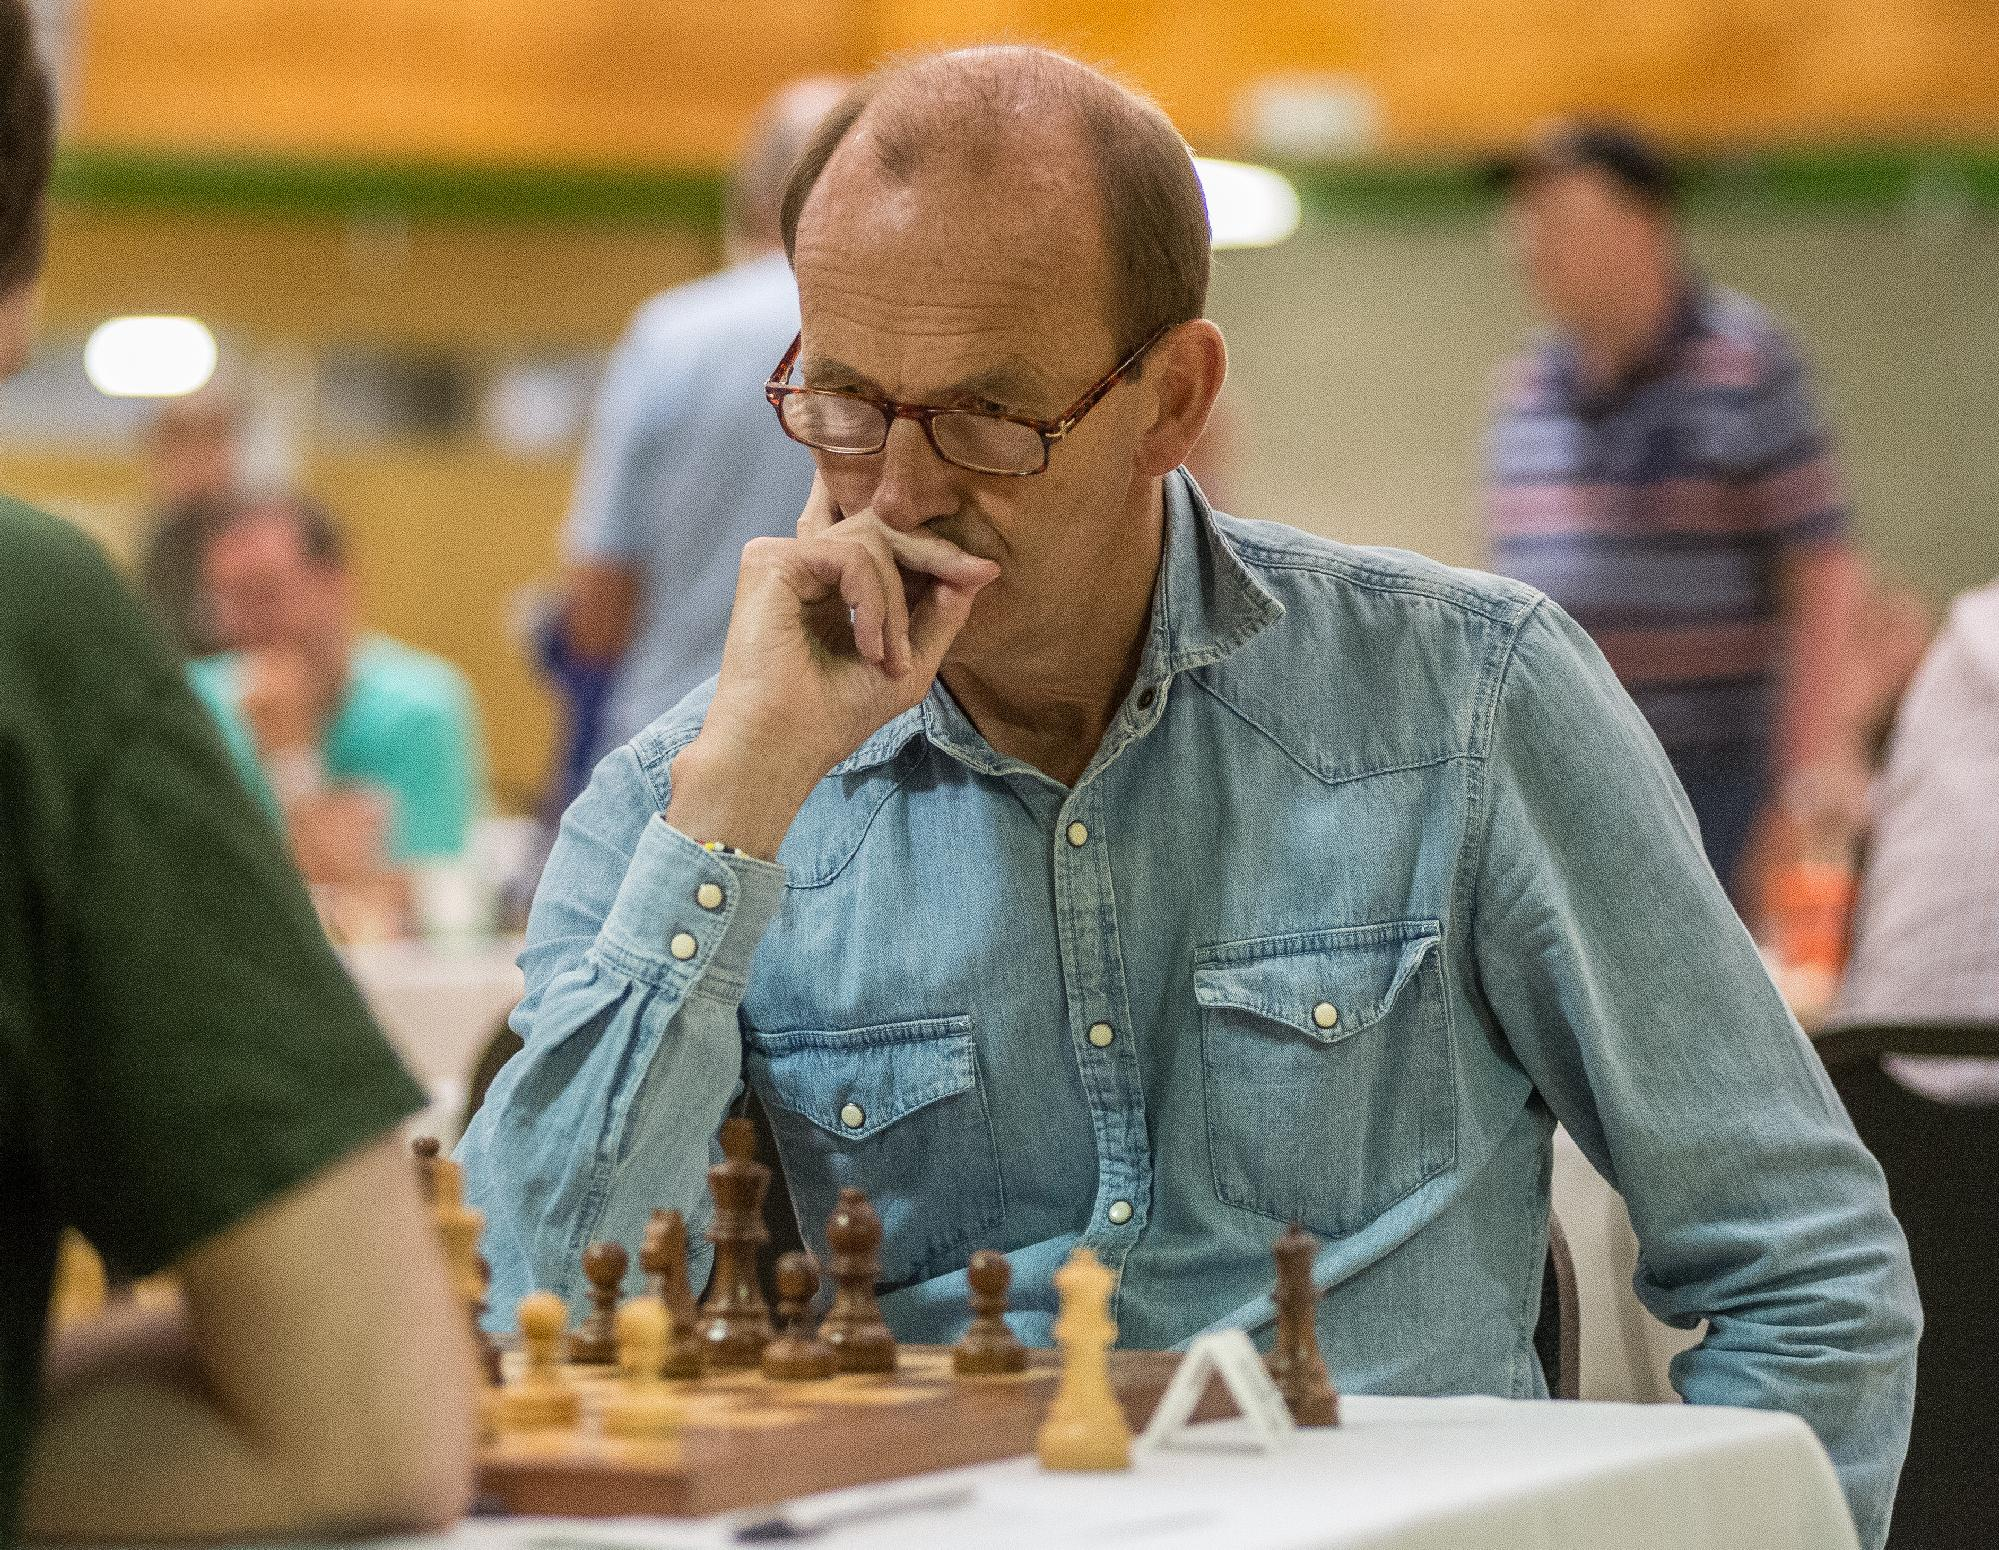 FM Andrew Smith at the 2019 British Championships in Torquay, courtesy of John Upham Photography